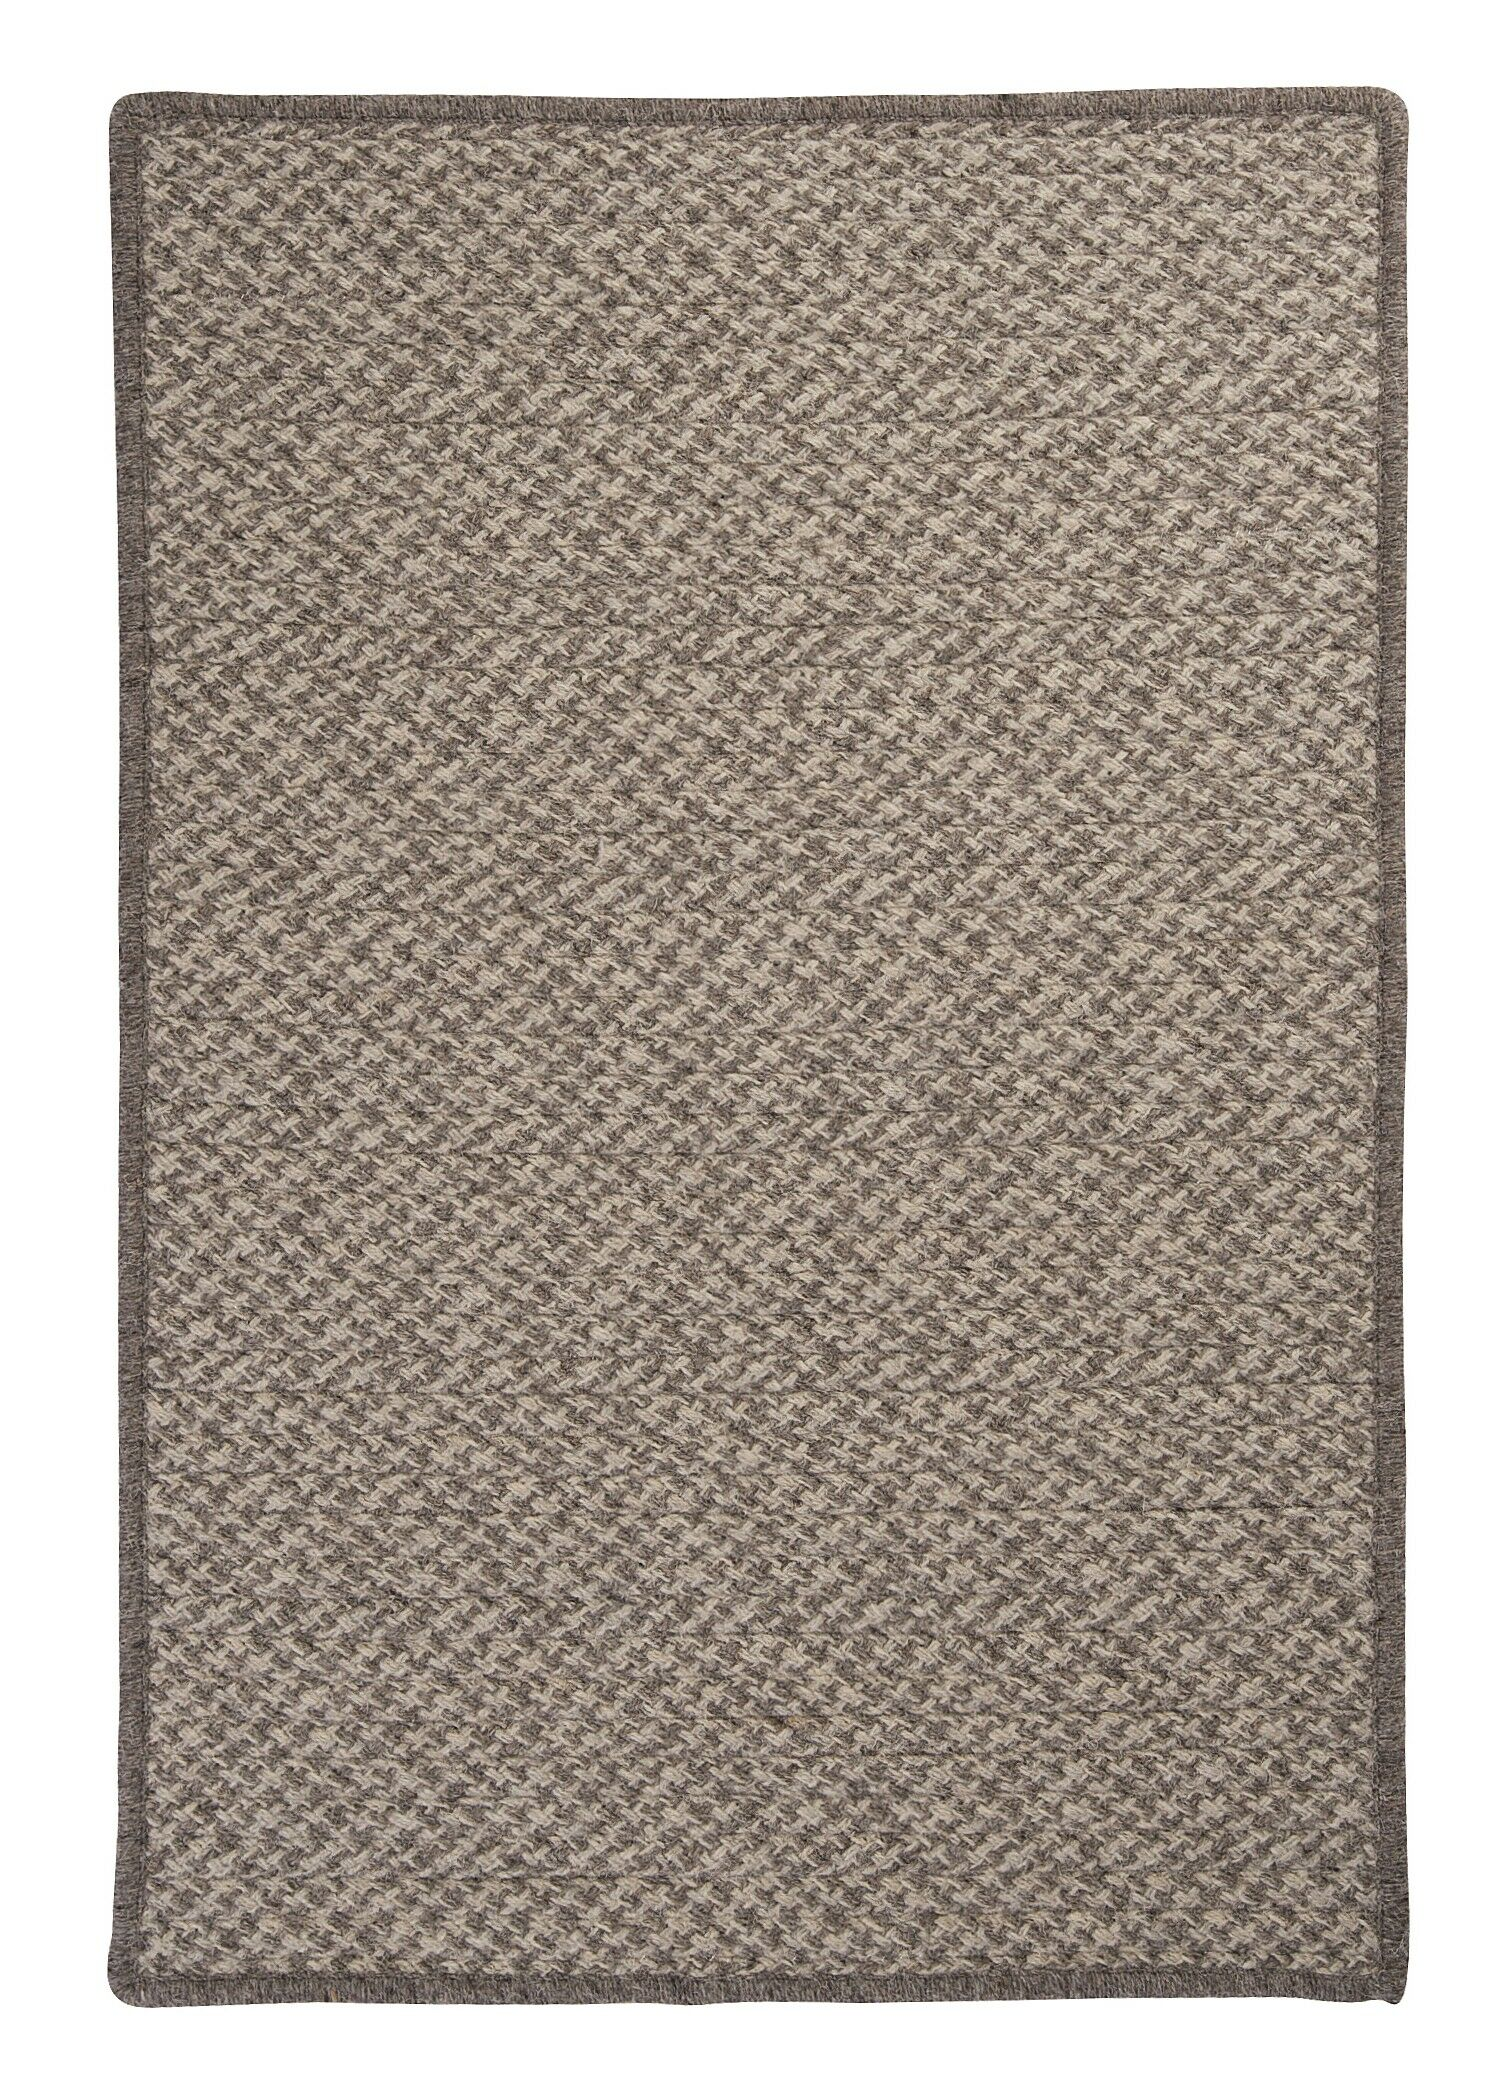 Natural Wool Houndstooth Braided Latte Area Rug Rug Size: Runner 2' x 8'